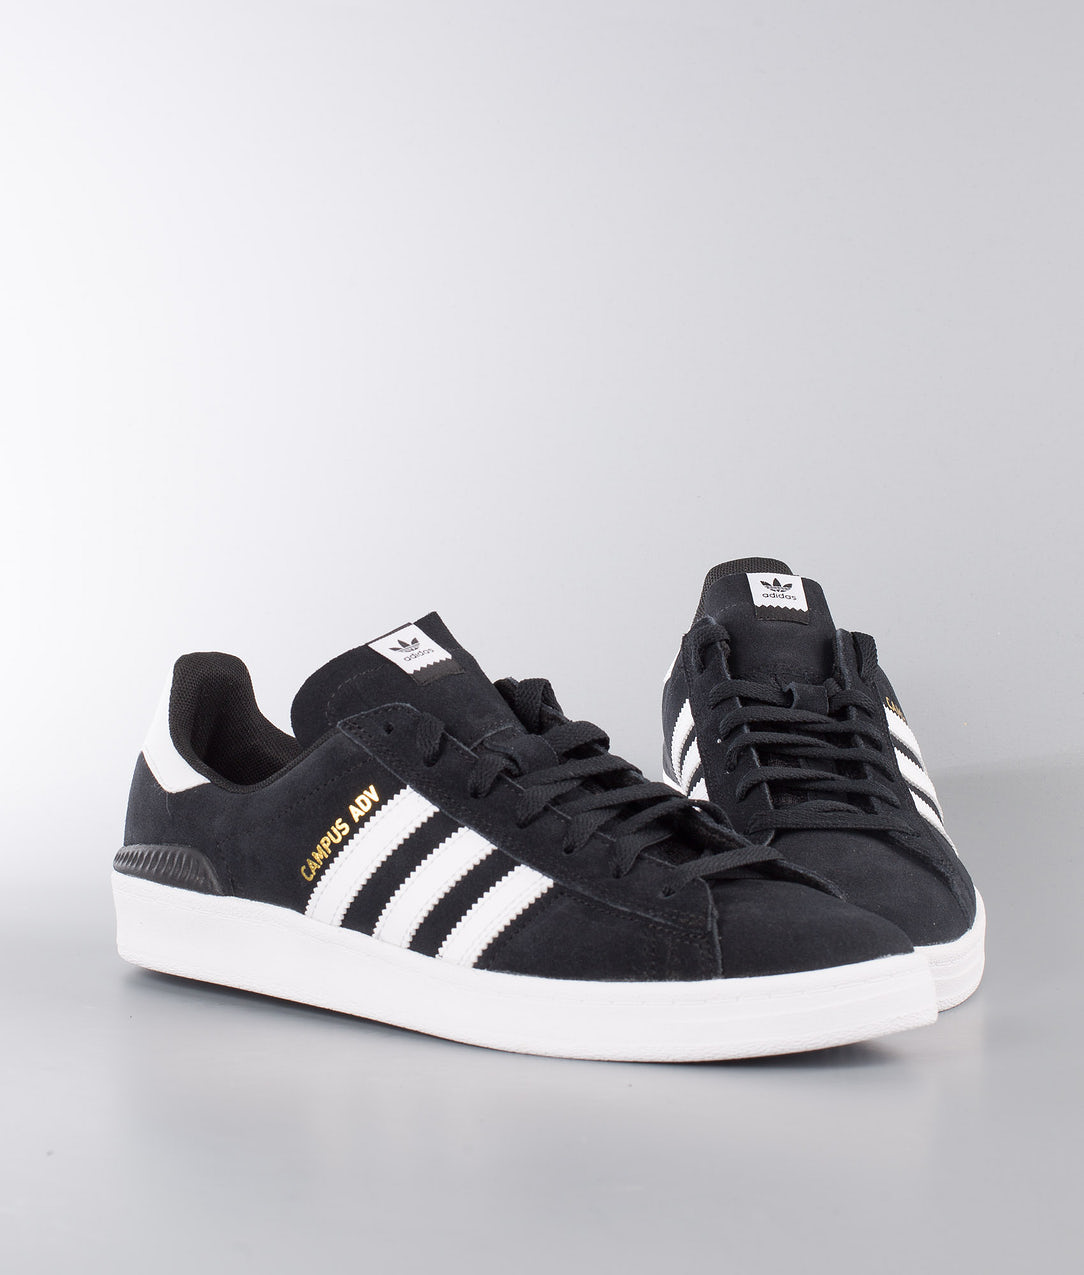 best website d633a 3ce93 Adidas Skateboarding Campus Adv Shoes Core Black/Ftwr White/Ftwr White